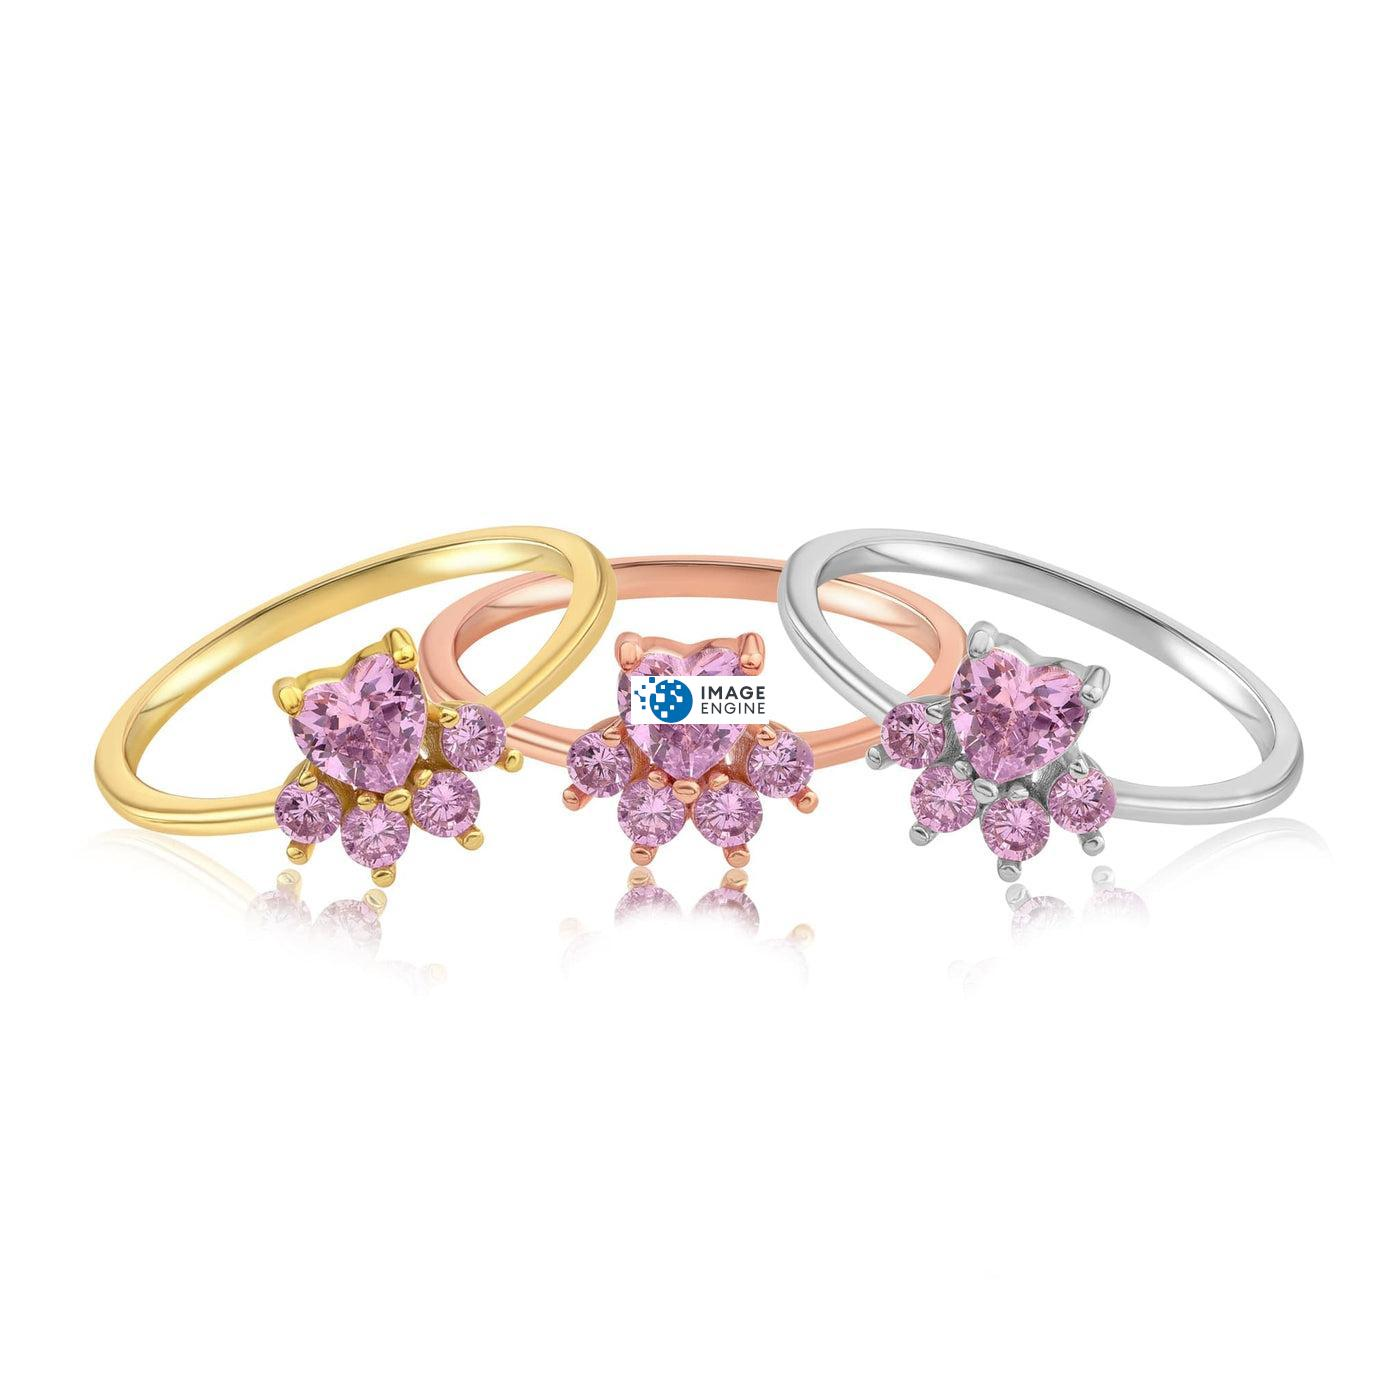 Bella Paw Rose Quartz Ring - Front View - Collection